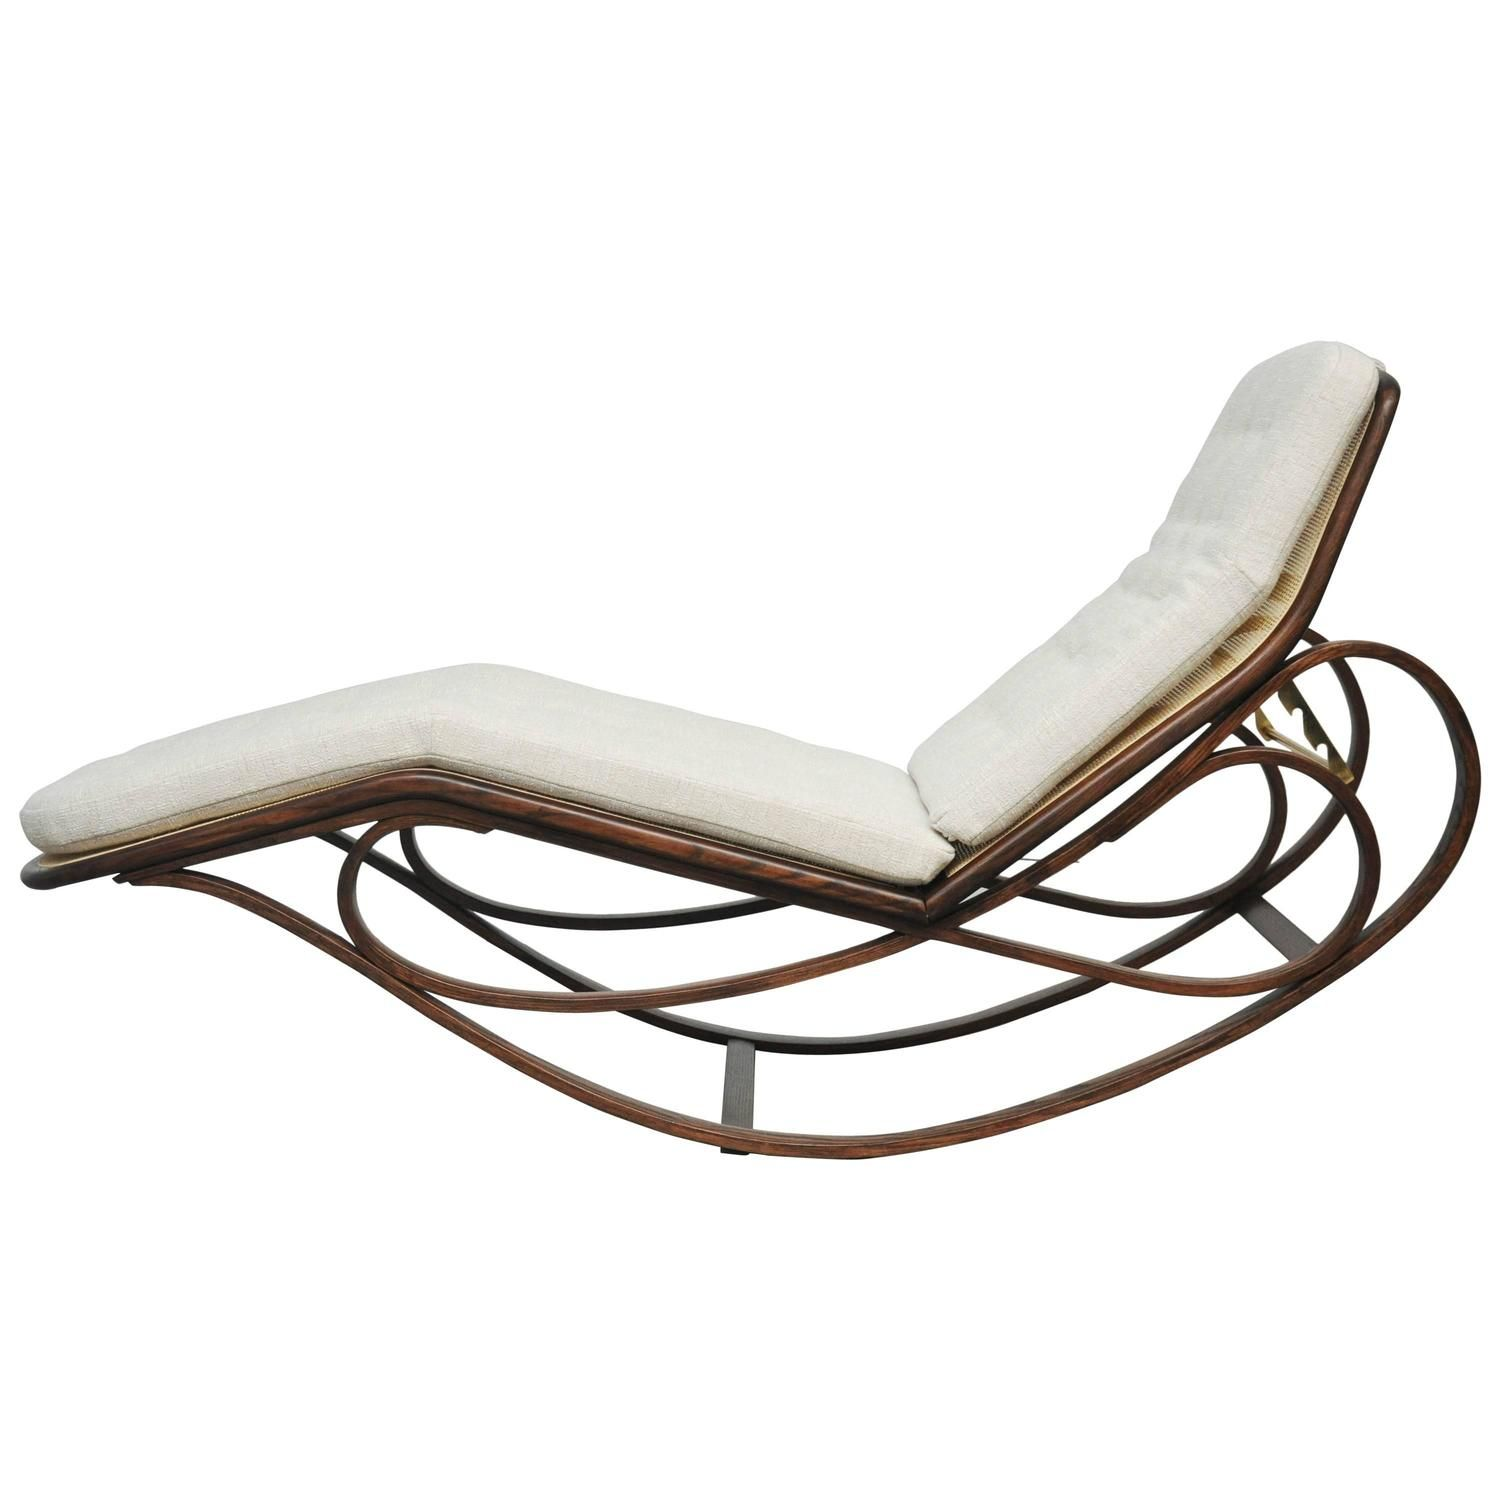 Tommy Bahama Outdoor Cushions, Dunbar Rocking Chaise Lounge By Edward Wormley From A Unique Collection Of Antique And Modern Chaise Longues At Https Chaise Lounge Chaise Teak Lounge Chair